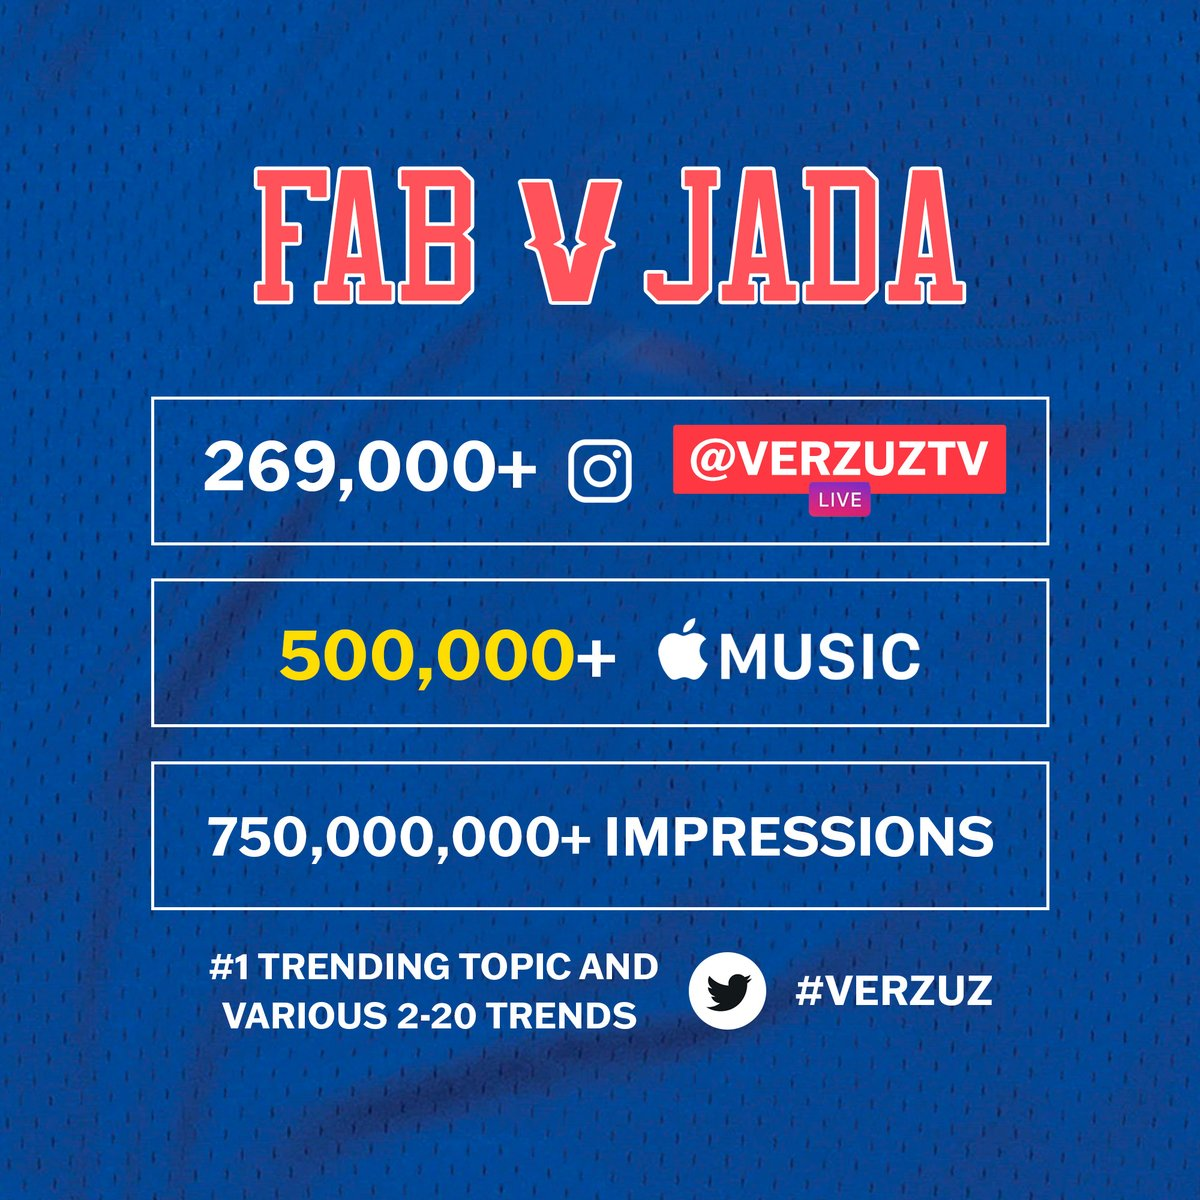 Everyone who tuned in Monday night to see @myfabolouslife and @Therealkiss — THANK YOU 📈📈📈 #Verzuz https://t.co/3ZVZRPyIcF